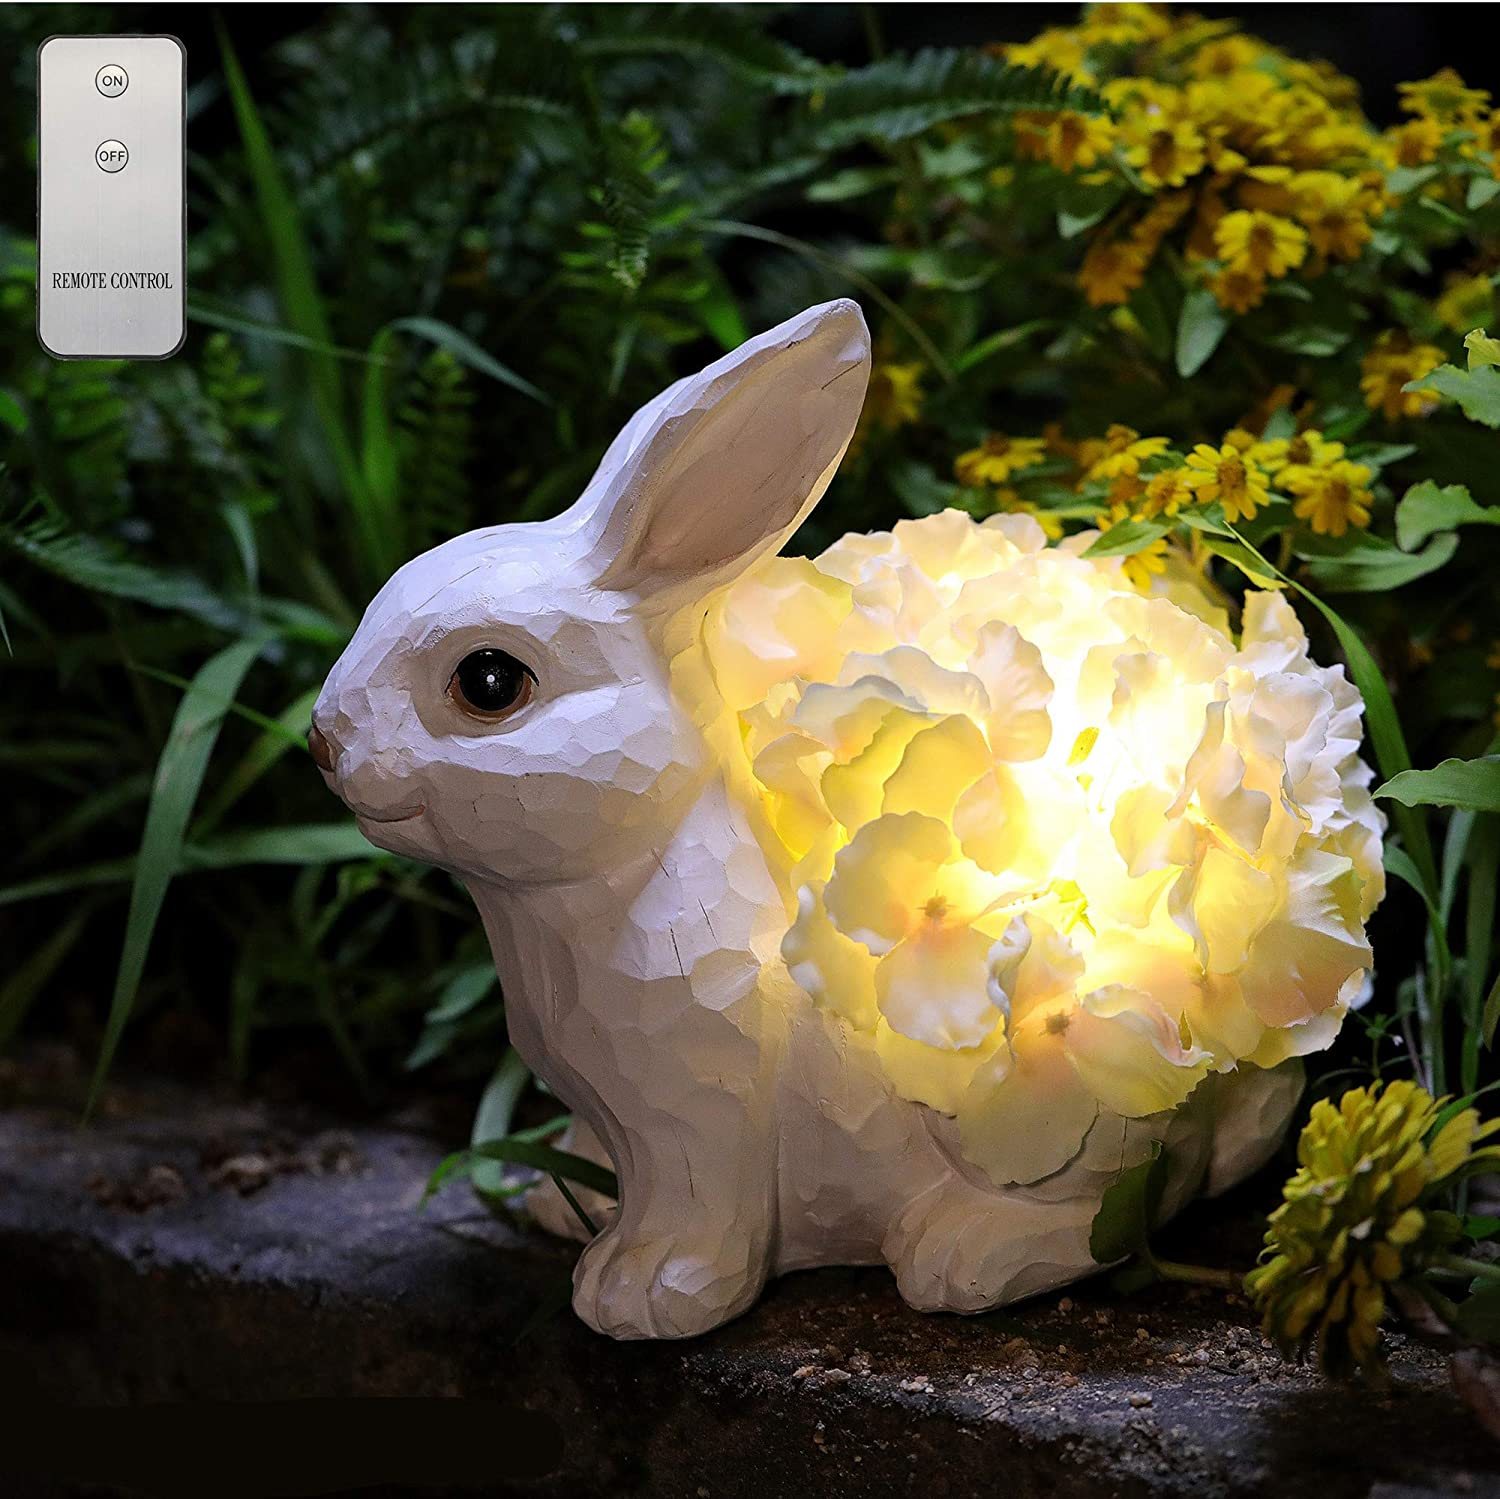 HDNICEZM Garden Statue Cute Rabbit Figurine with Flower Lights Warm White LED -Battery Powered Remote Control Rabbit Statue Night Light Home Garden for Backyard Pathway Patio